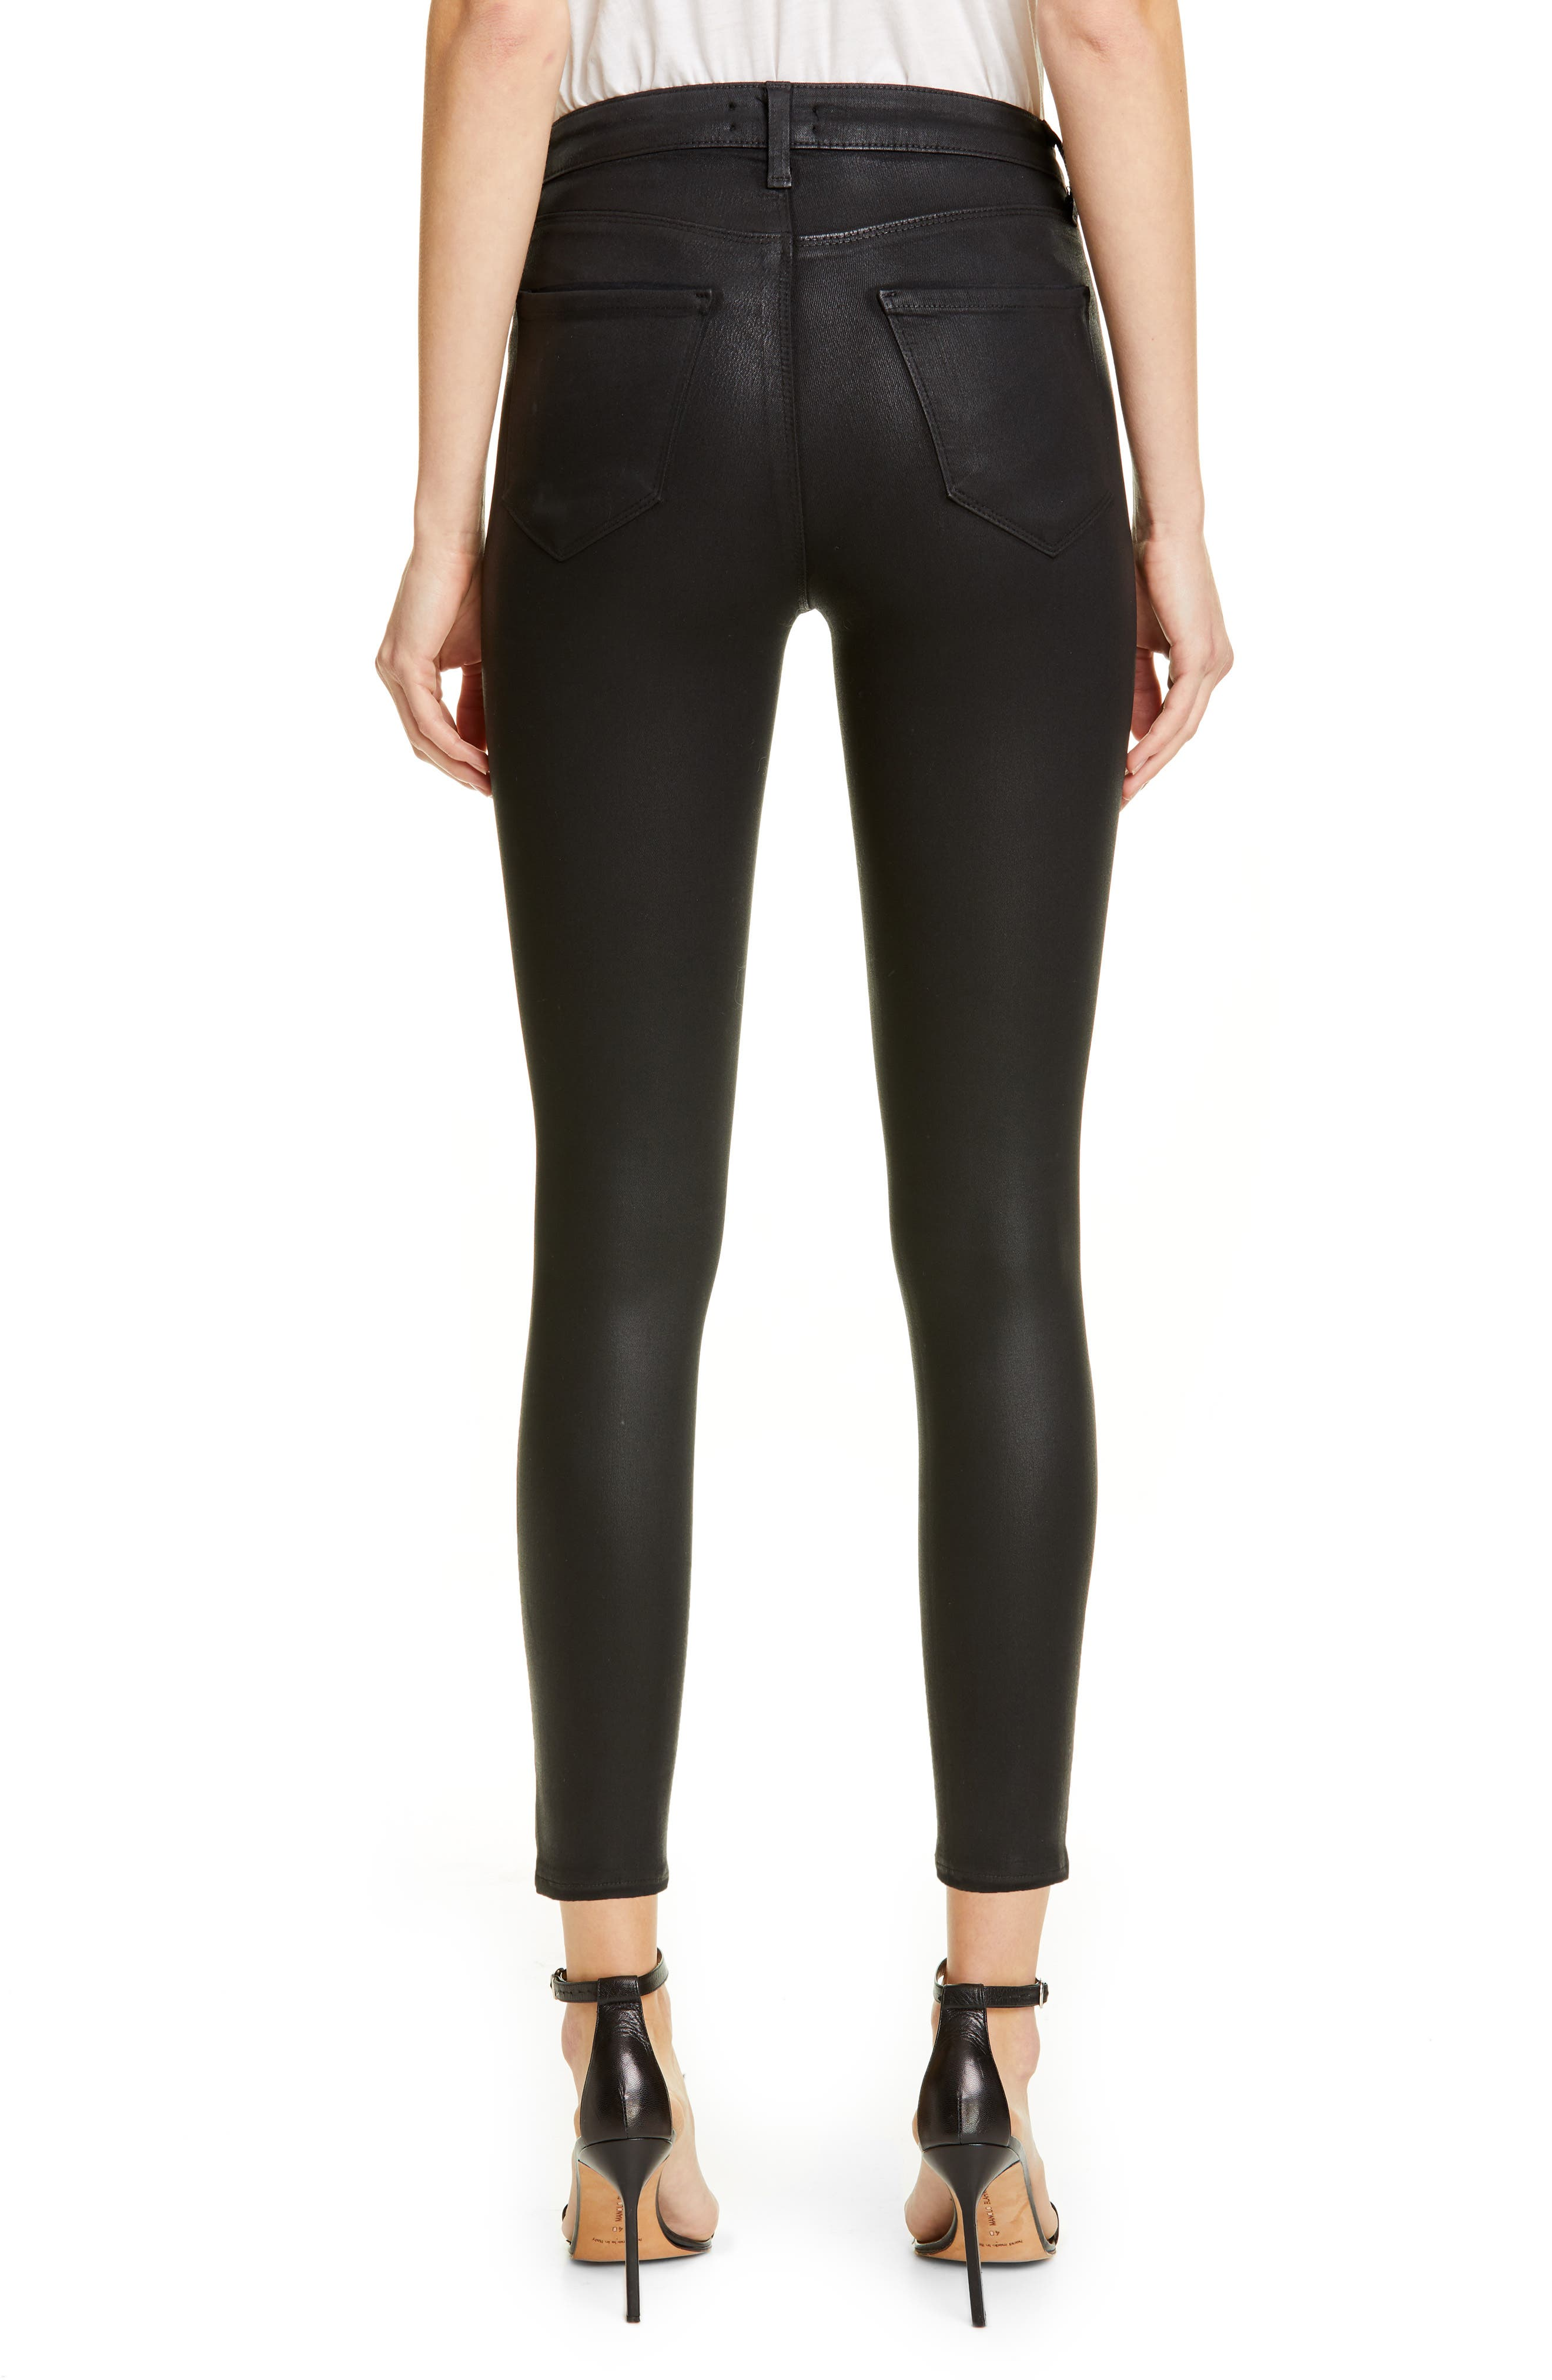 L'AGENCE, Coated High Waist Skinny Jeans, Alternate thumbnail 2, color, BLACK COATED